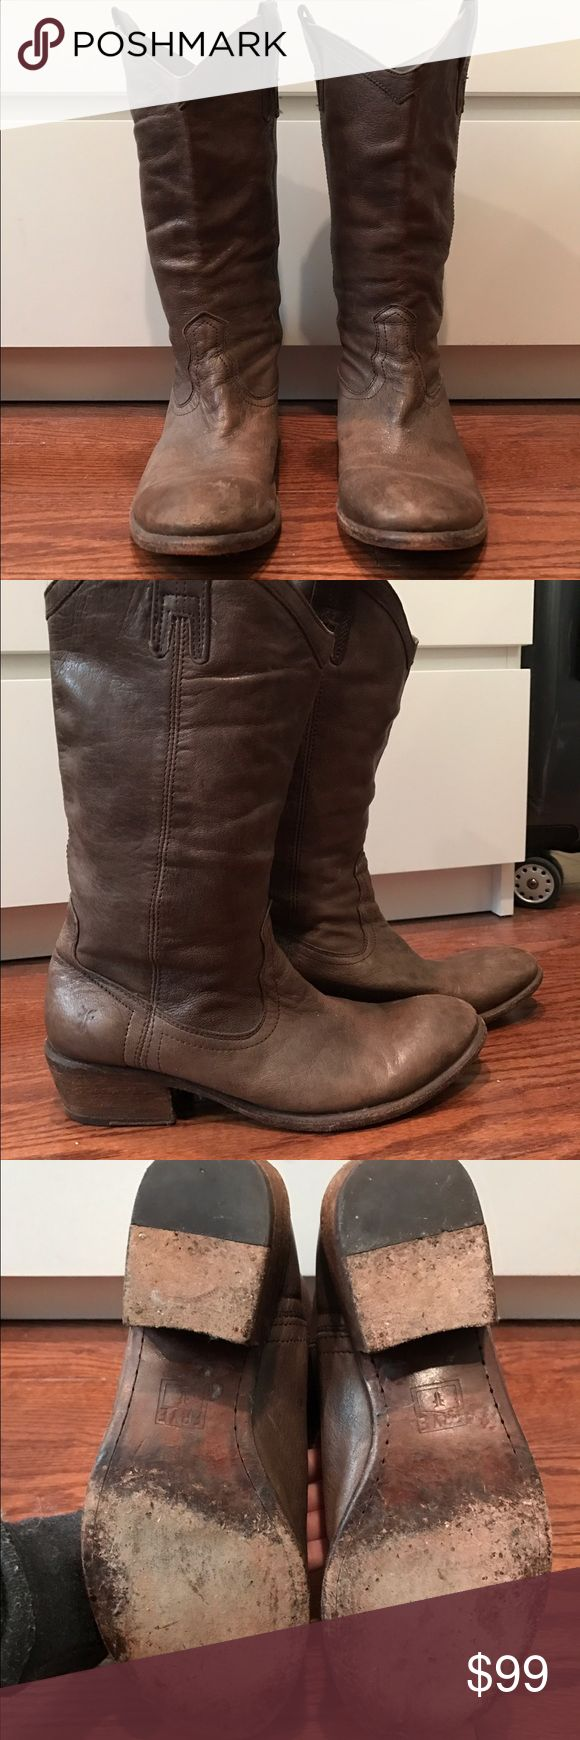 Frye brown/grey leather boots Frye brown/grey leather boots. Leather scuffs on toes Frye Shoes Heeled Boots